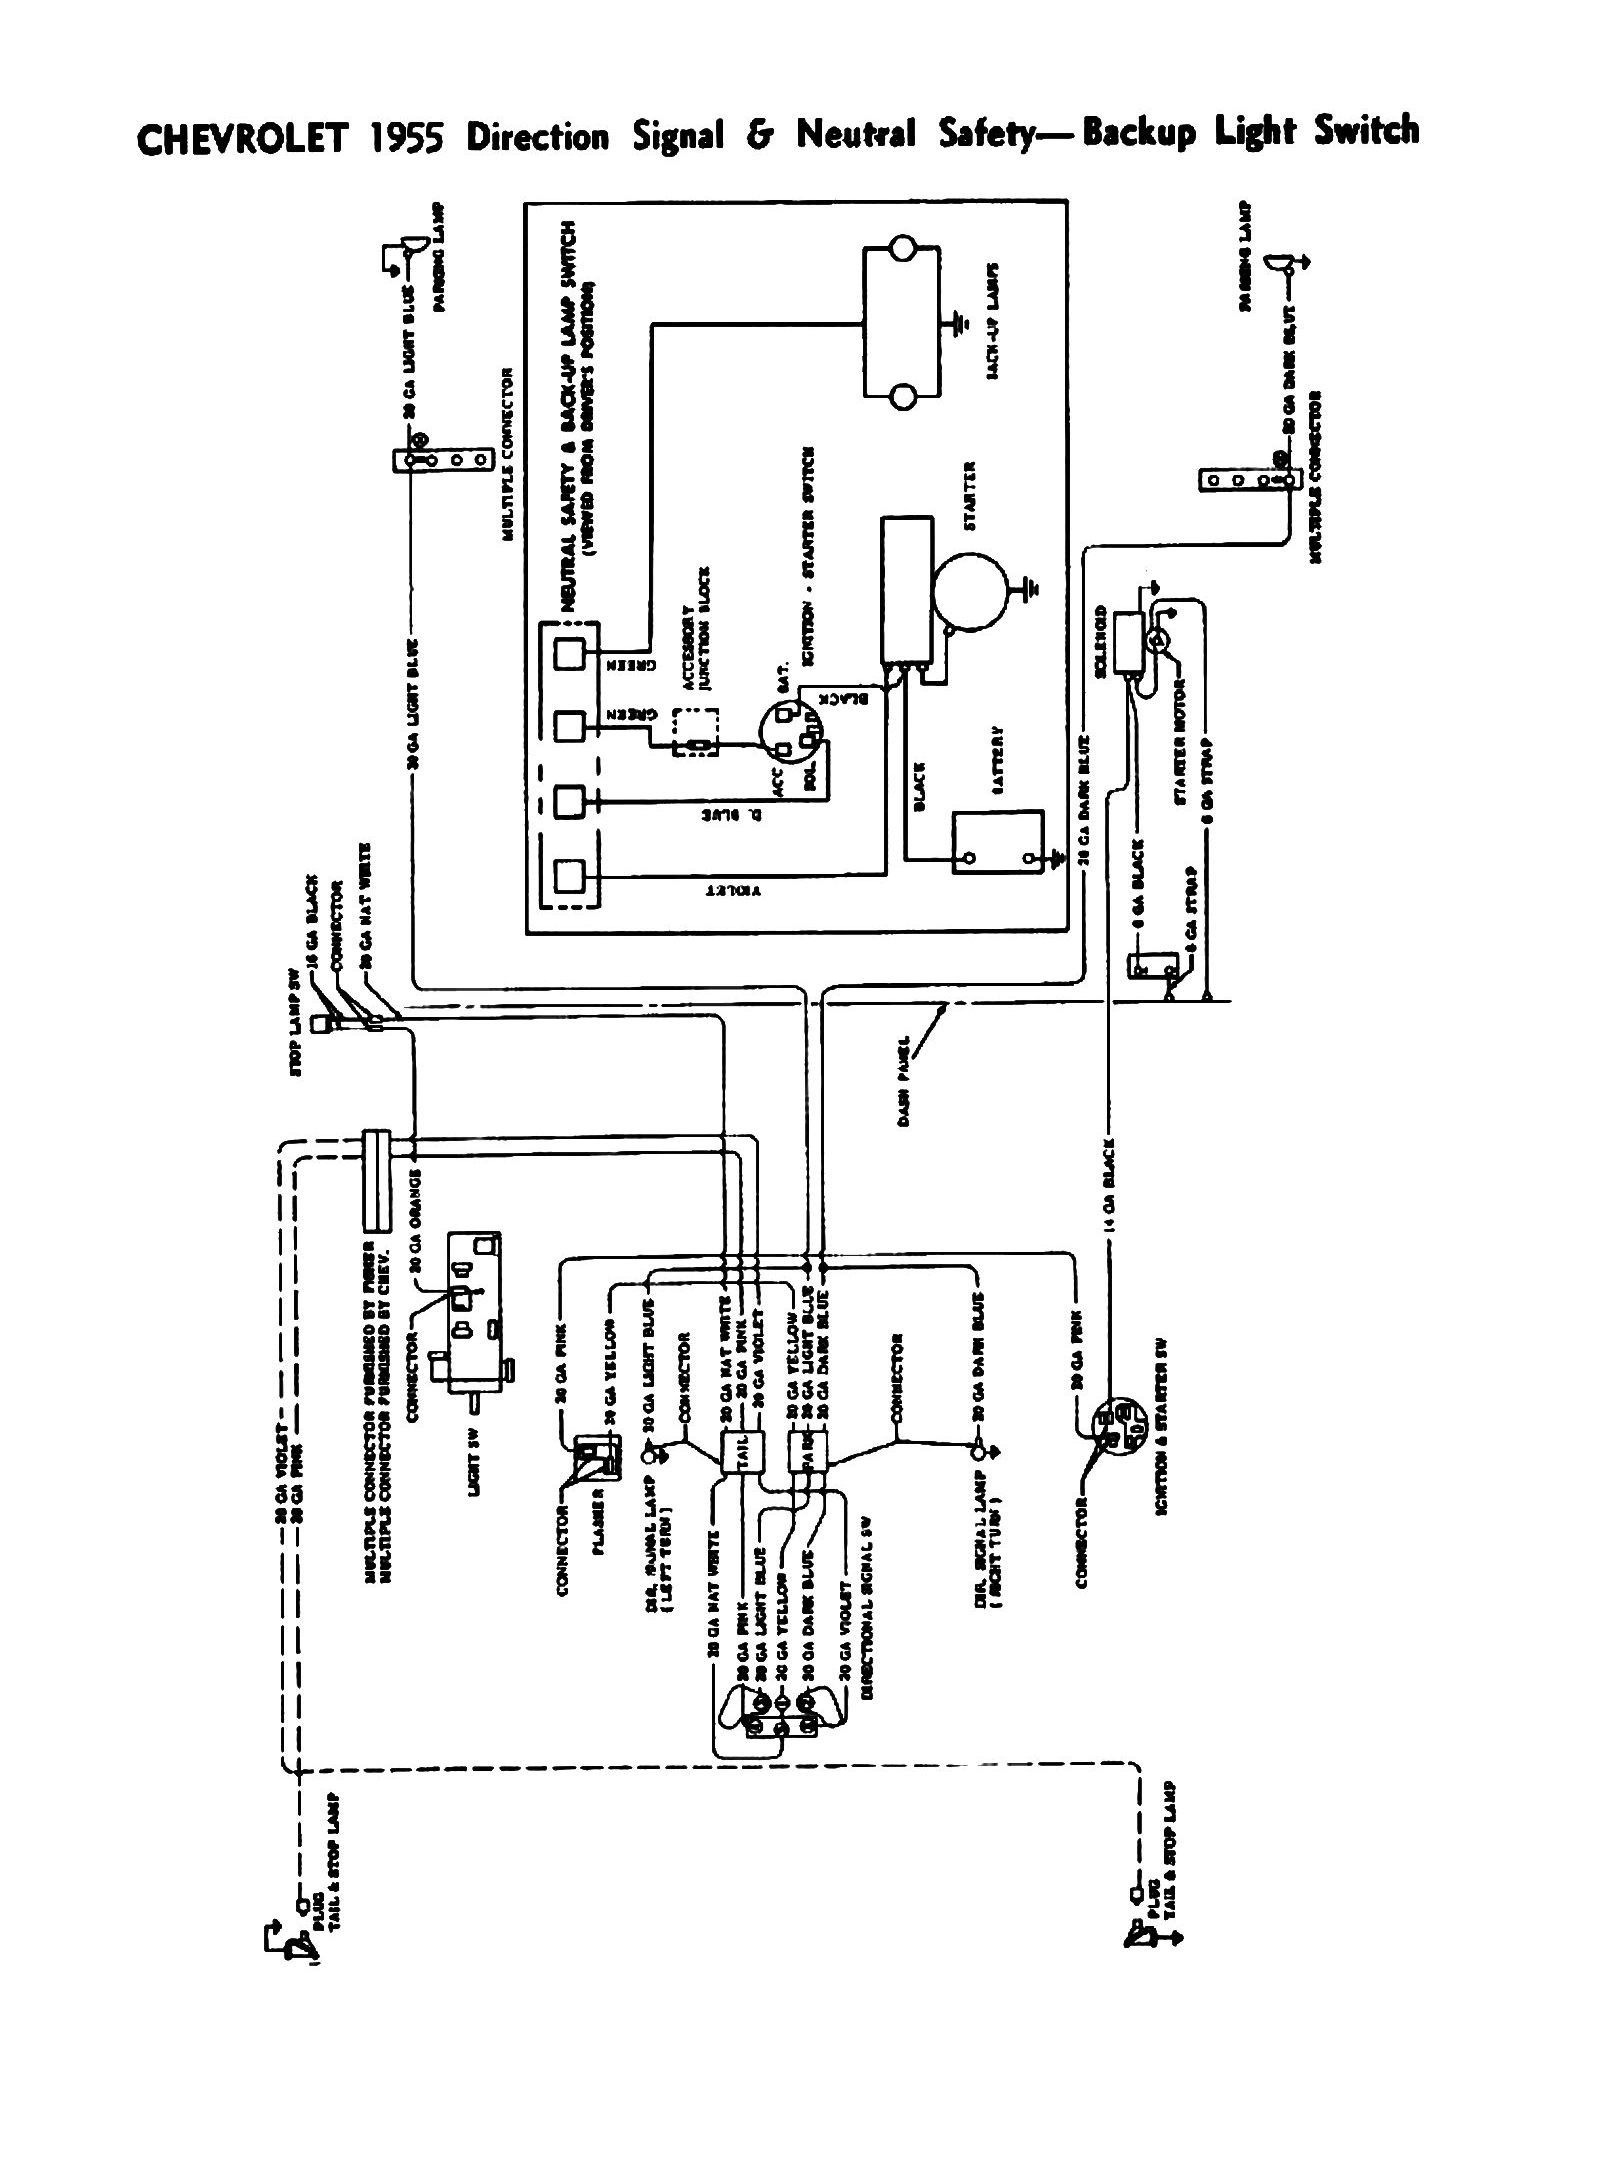 Mack Truck Fuel System Diagram 1955 Chevy Fuel Tank Diagram 1955 Chevy Ignition Wiring Diagram Of Mack Truck Fuel System Diagram